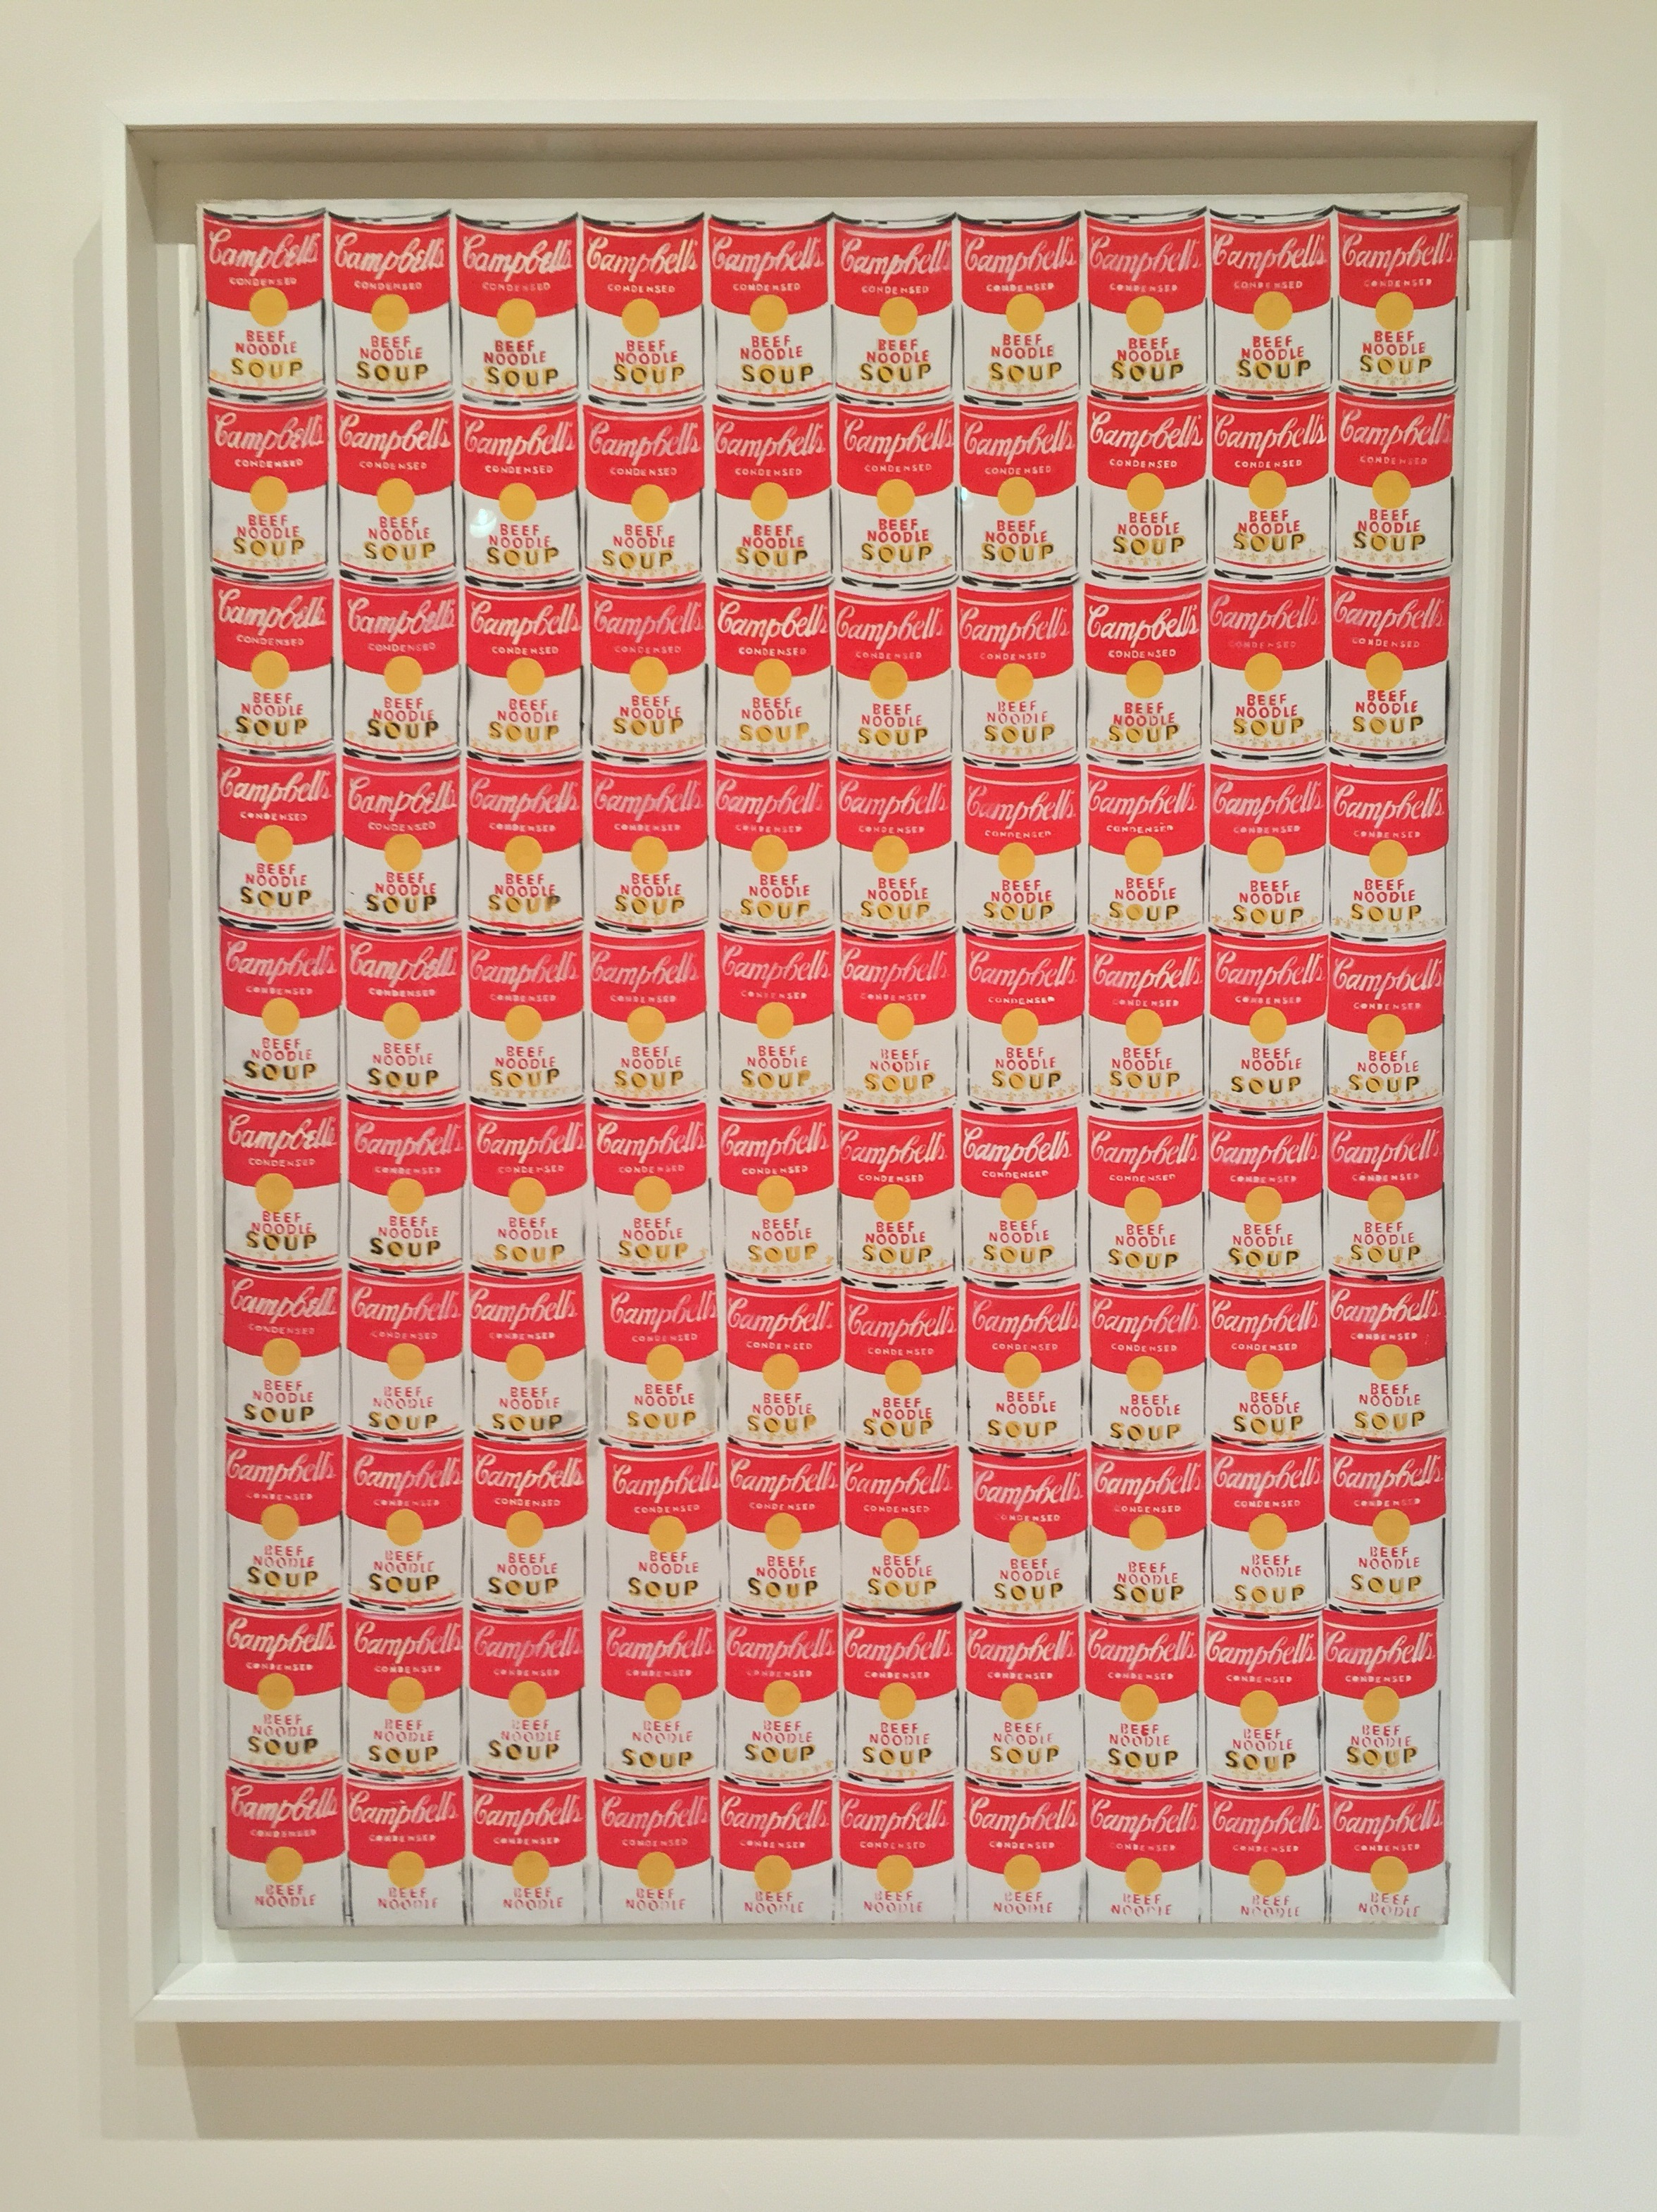 Andy Warhol's 100 Cans in the exhibition Van Gogh to Pollock: Modern Rebels, Masterworks from the Albright-Knox Art Gallery. Photo by the author.